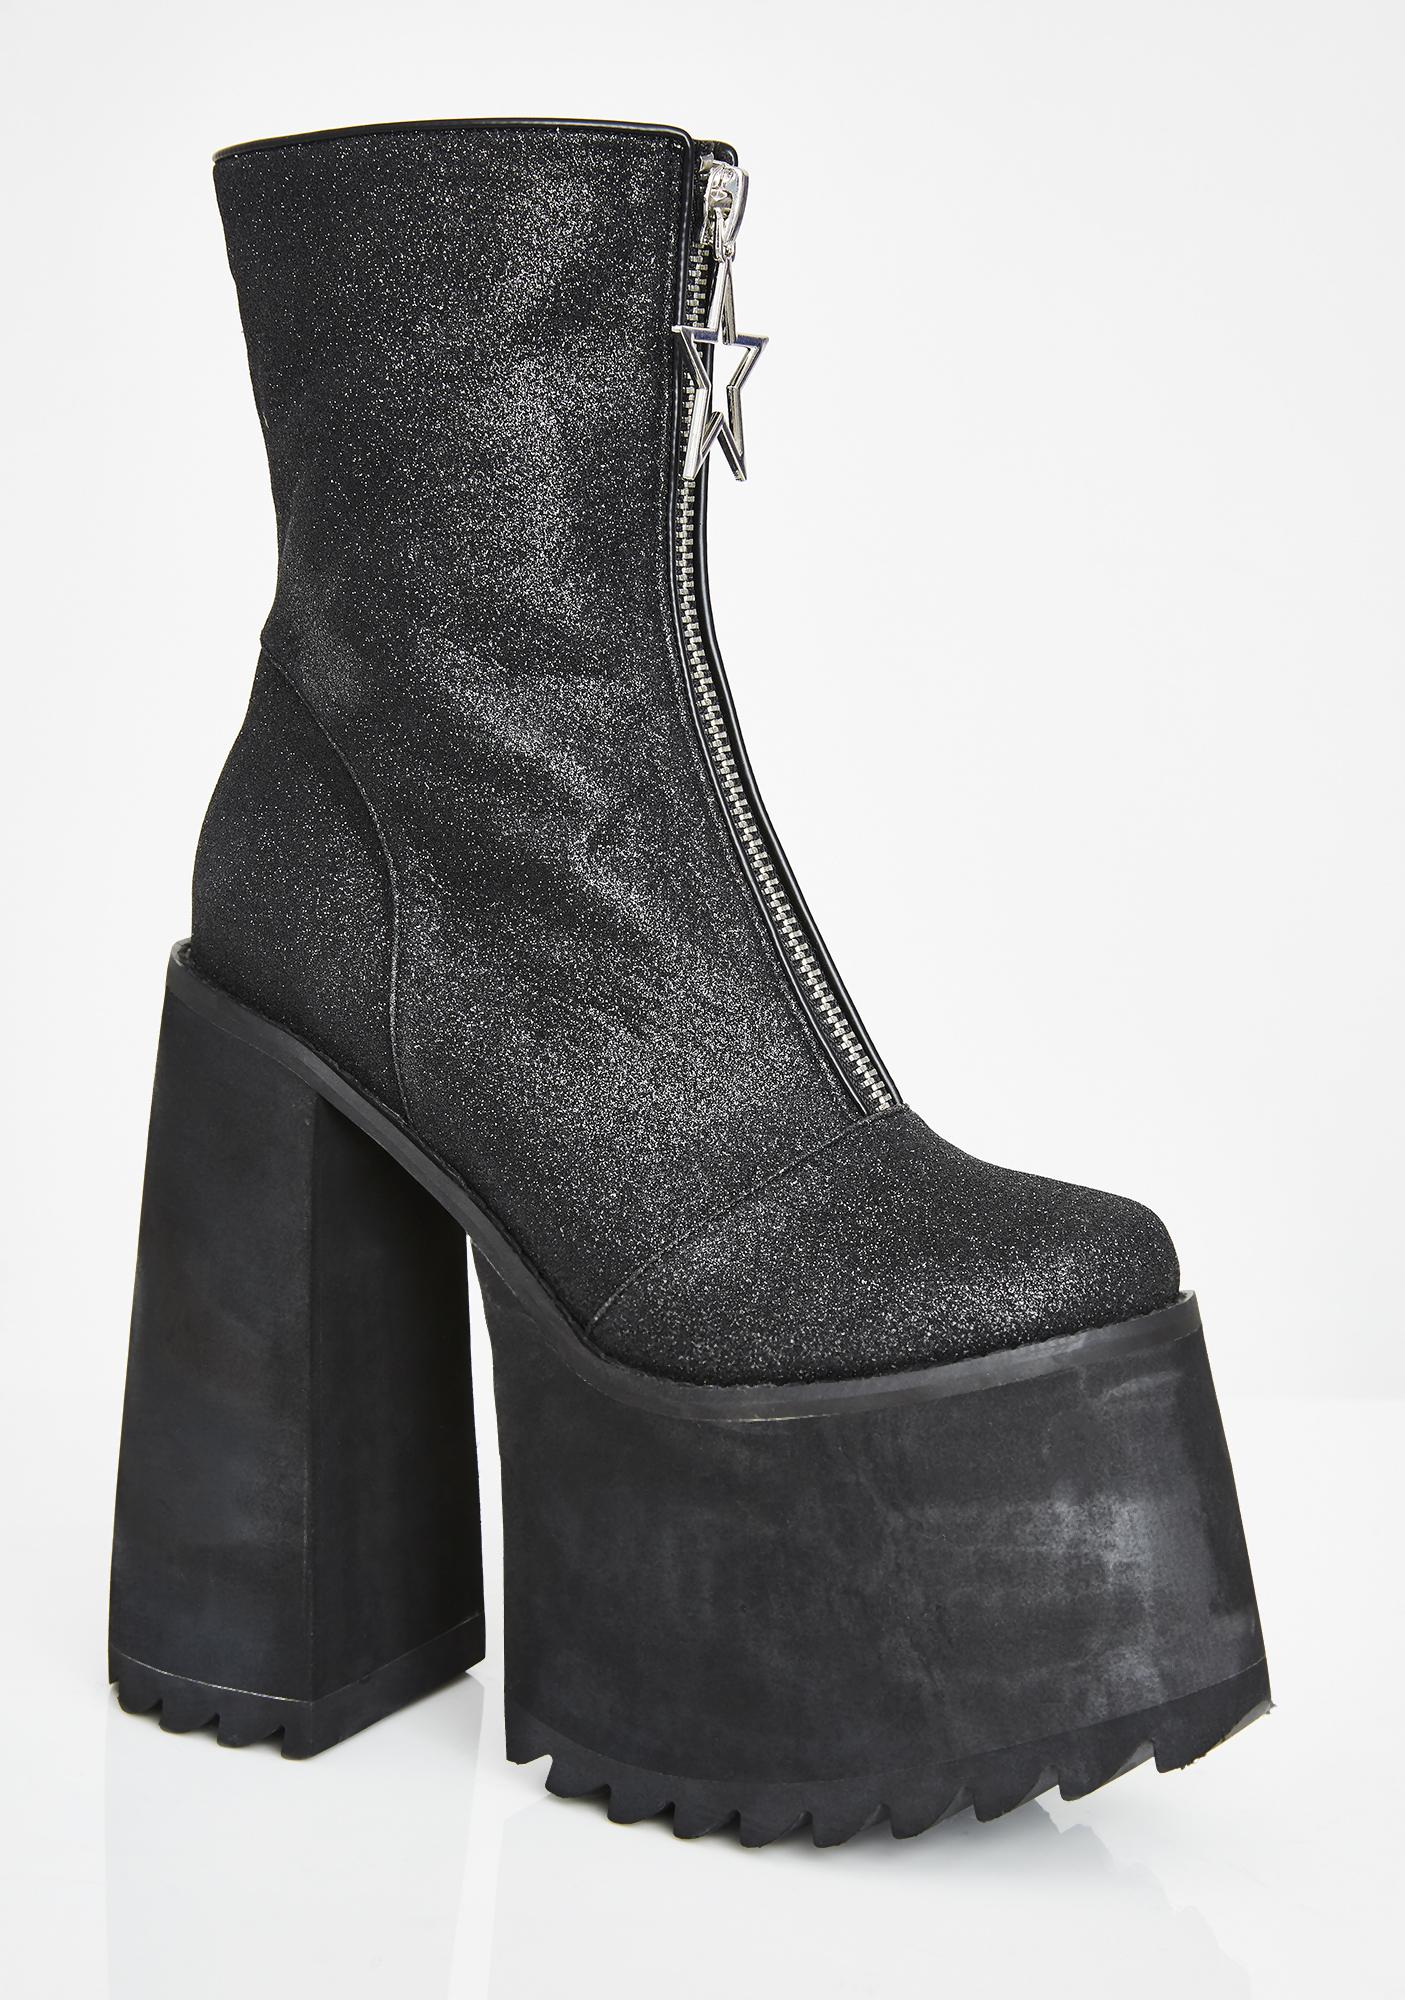 Current Mood Superstar Envy Platform Boots